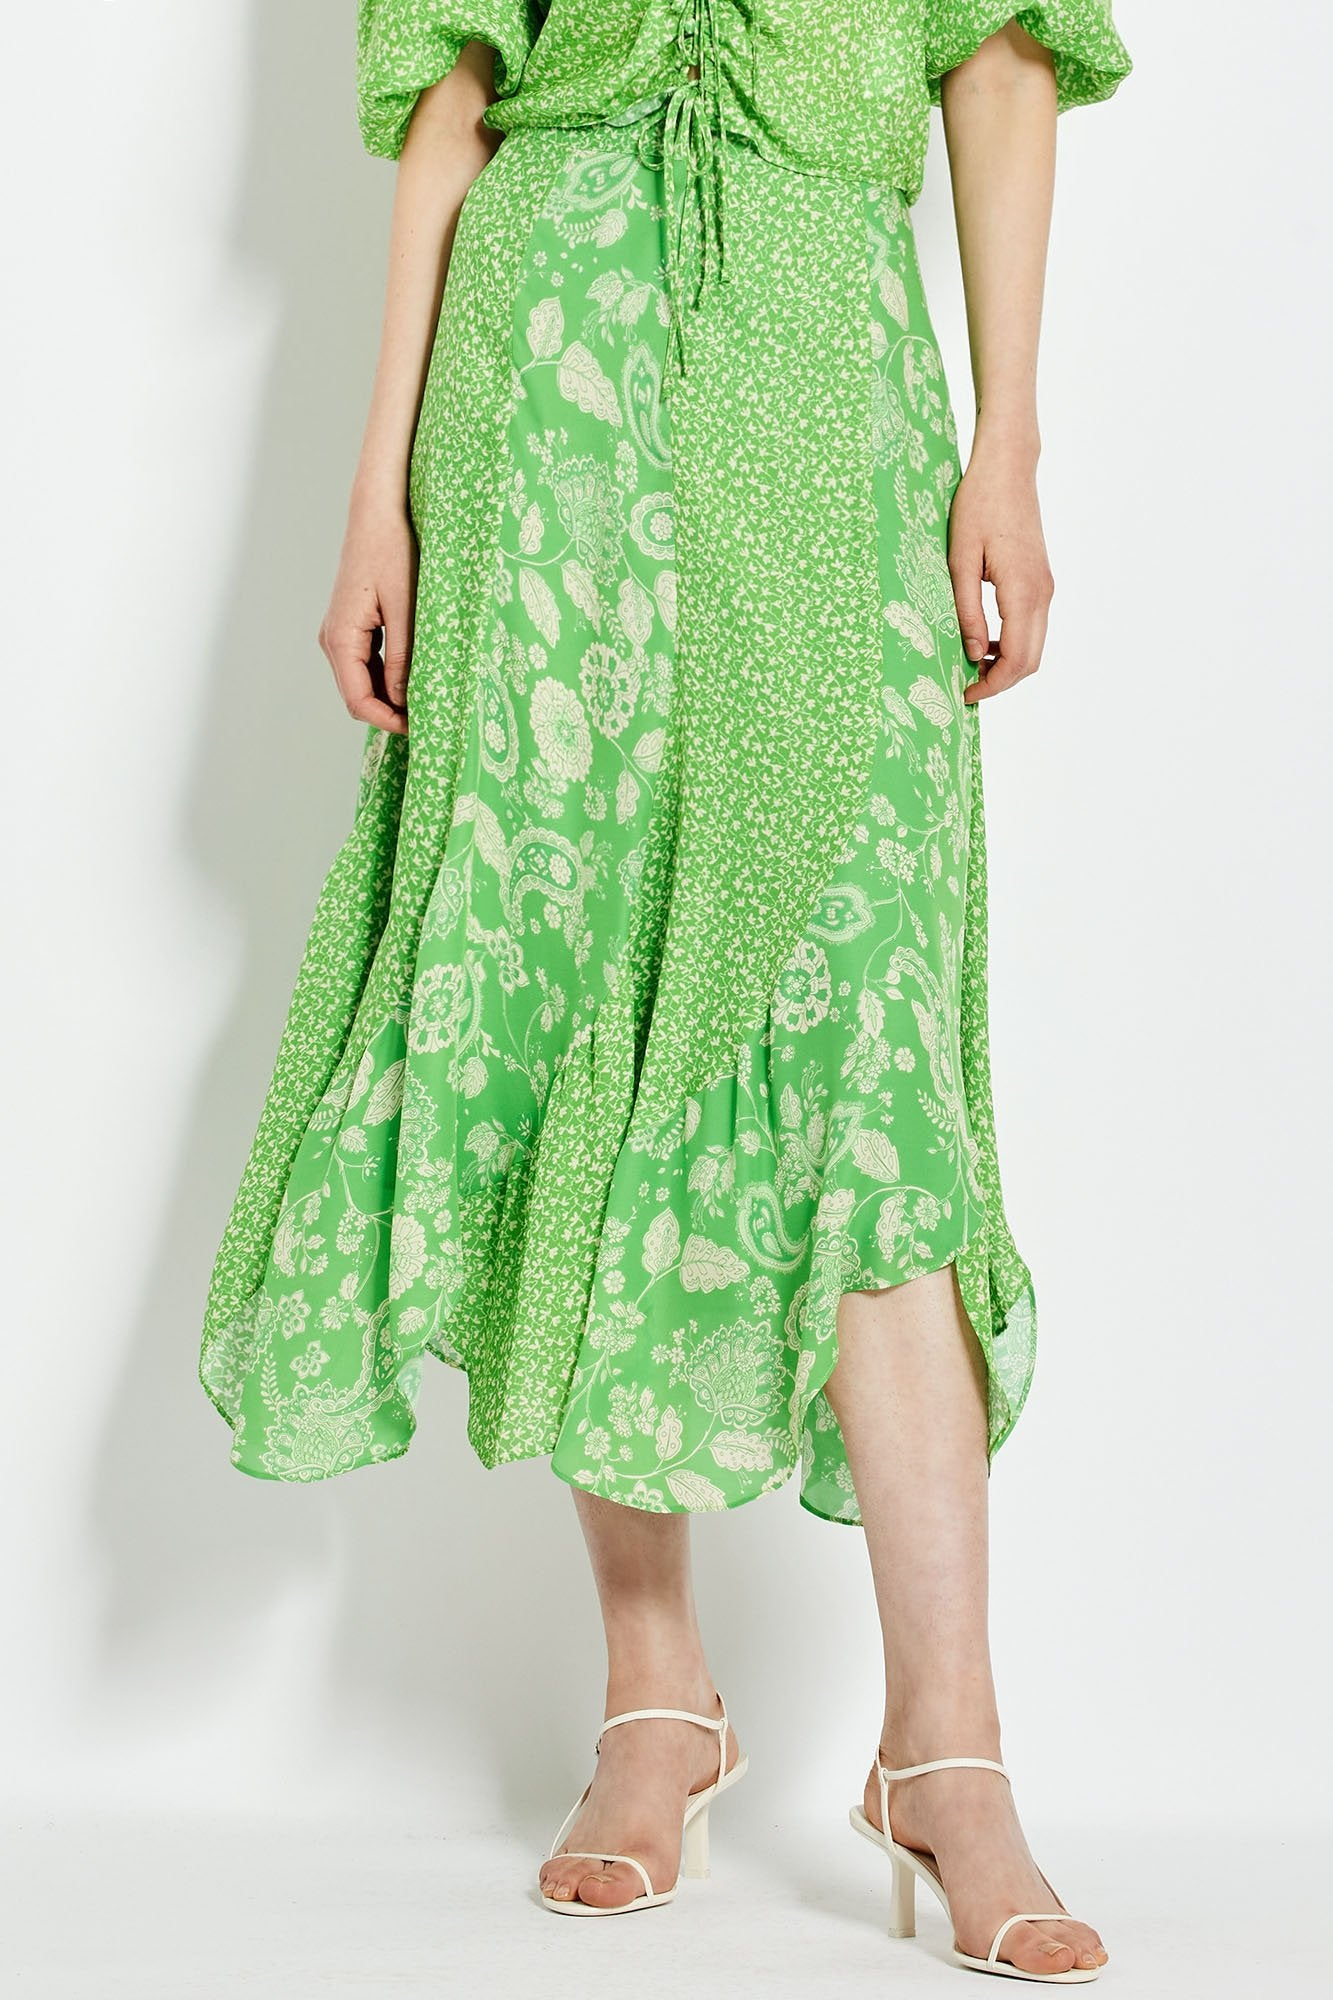 Debbie Skirt - Leaf Vine Paisley Mix